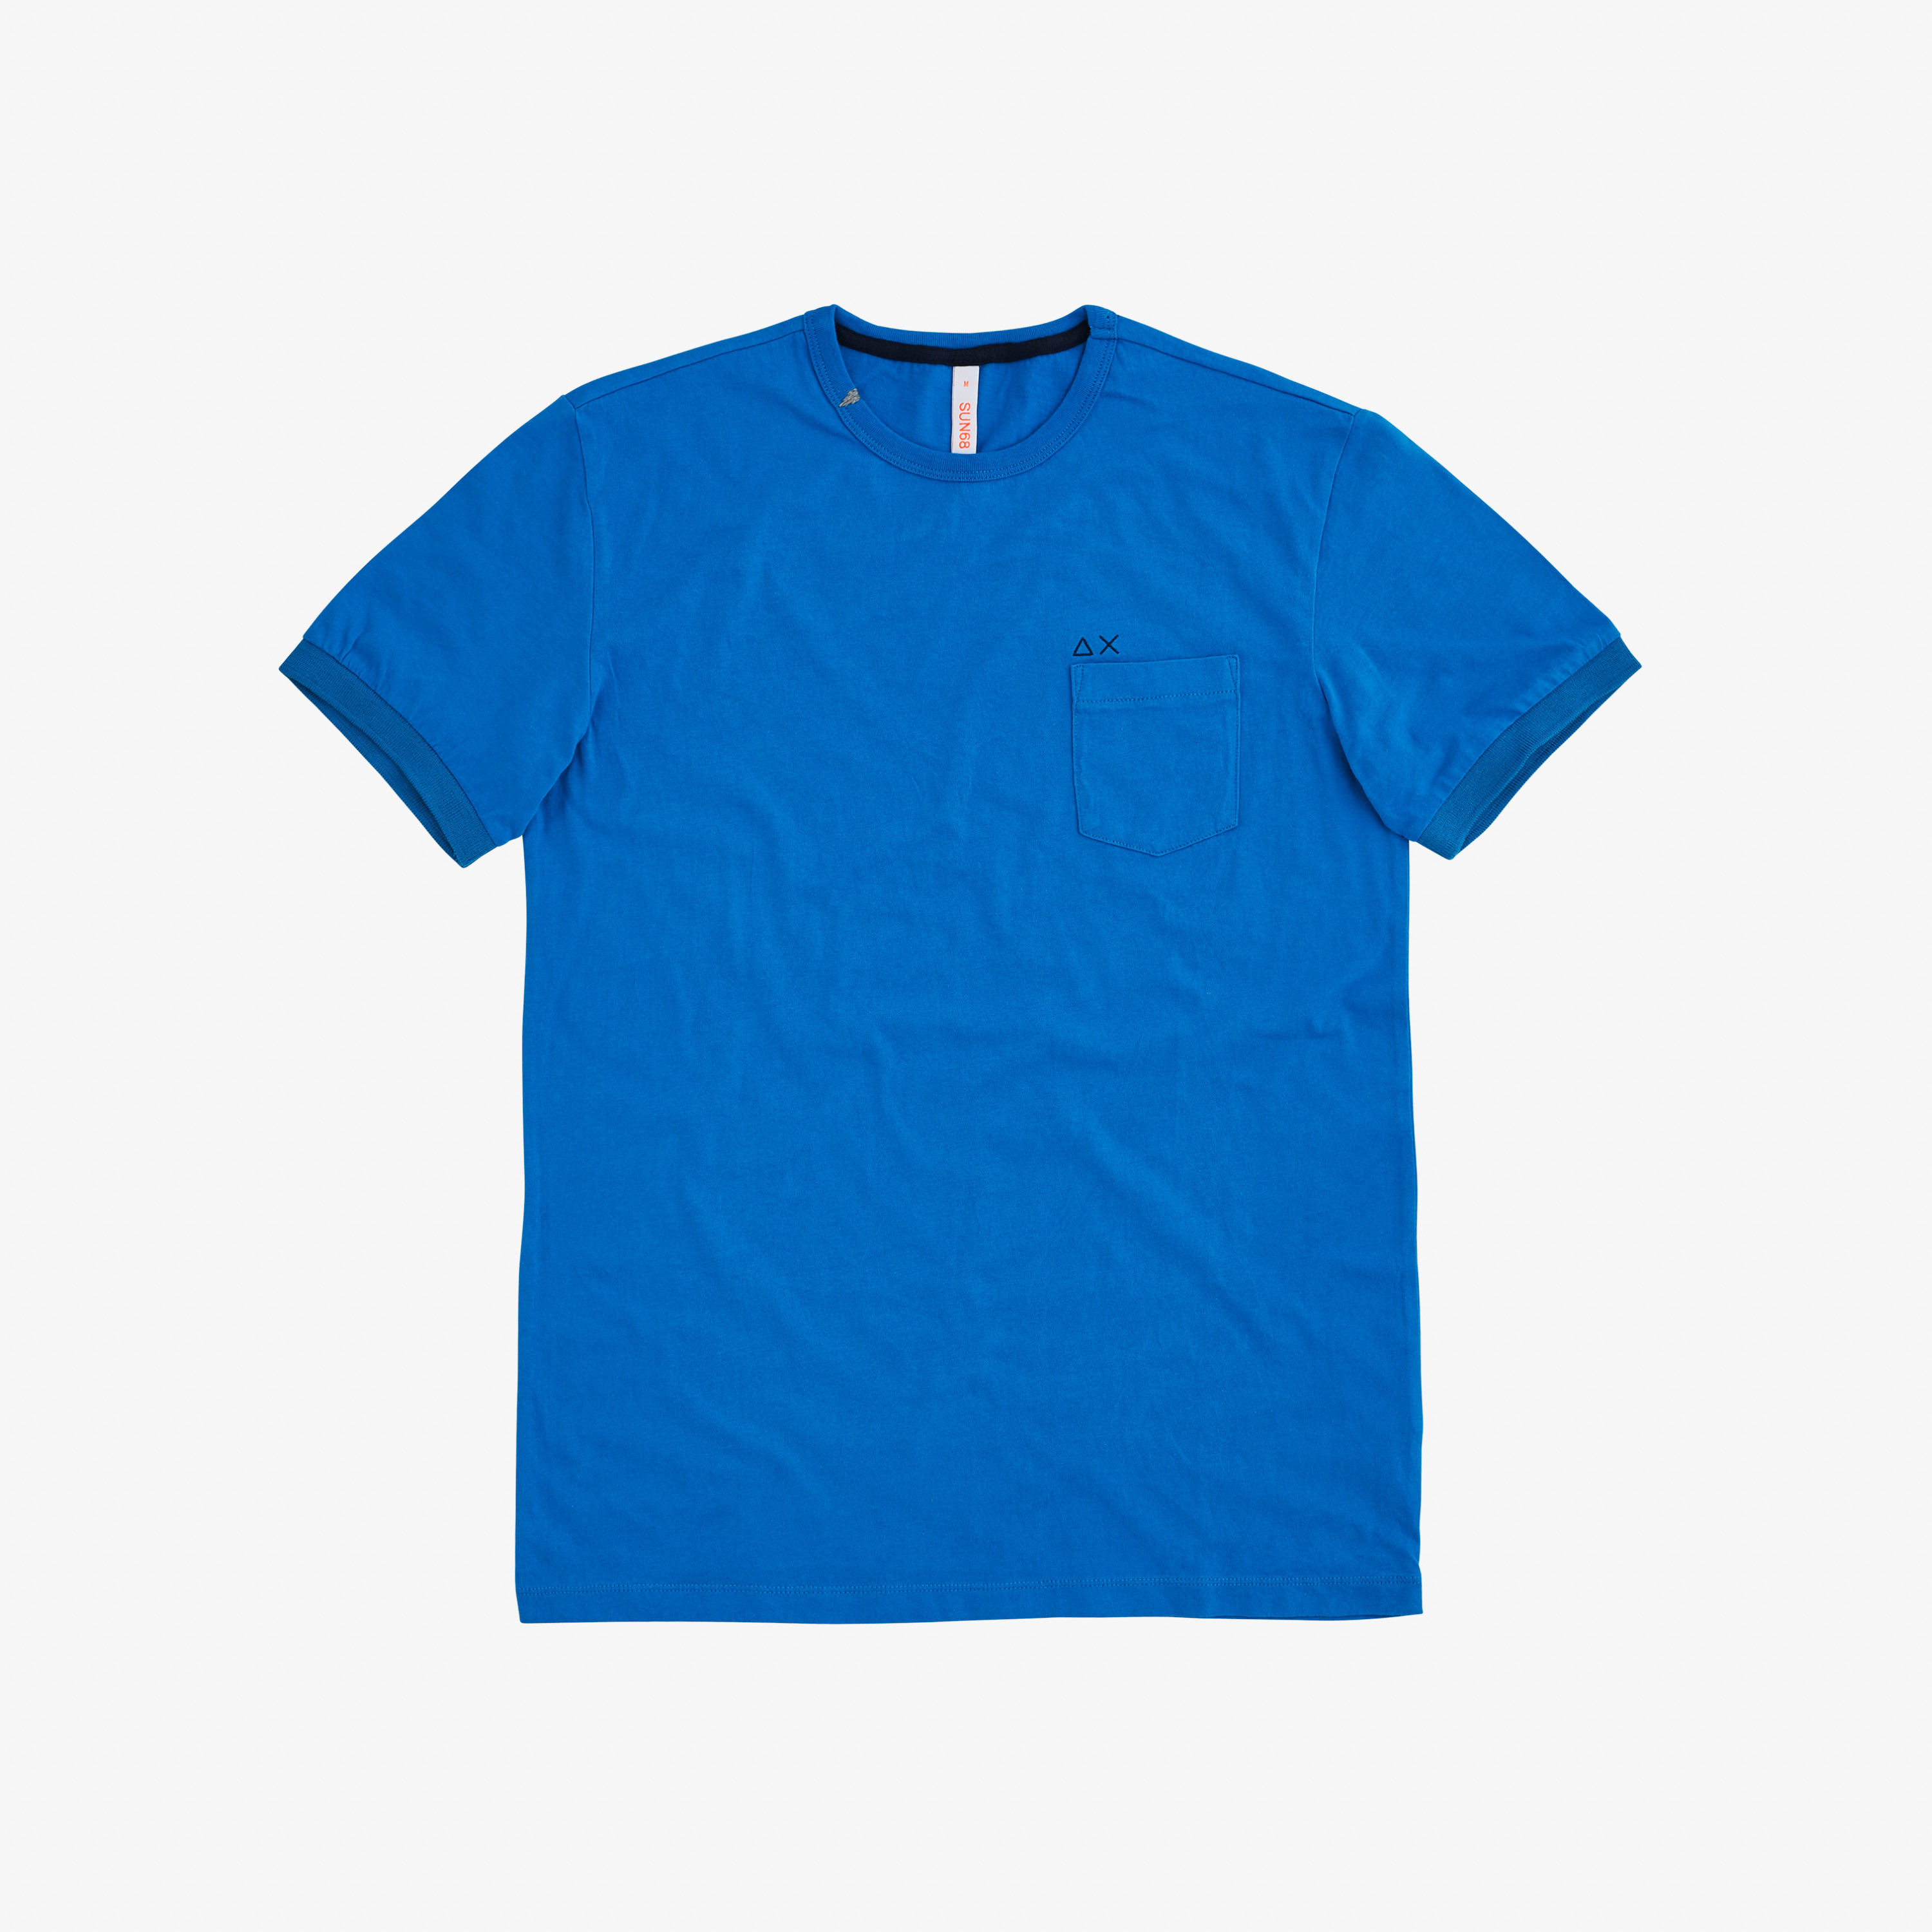 T-SHIRT SOLID POCKET S/S TURQUOISE